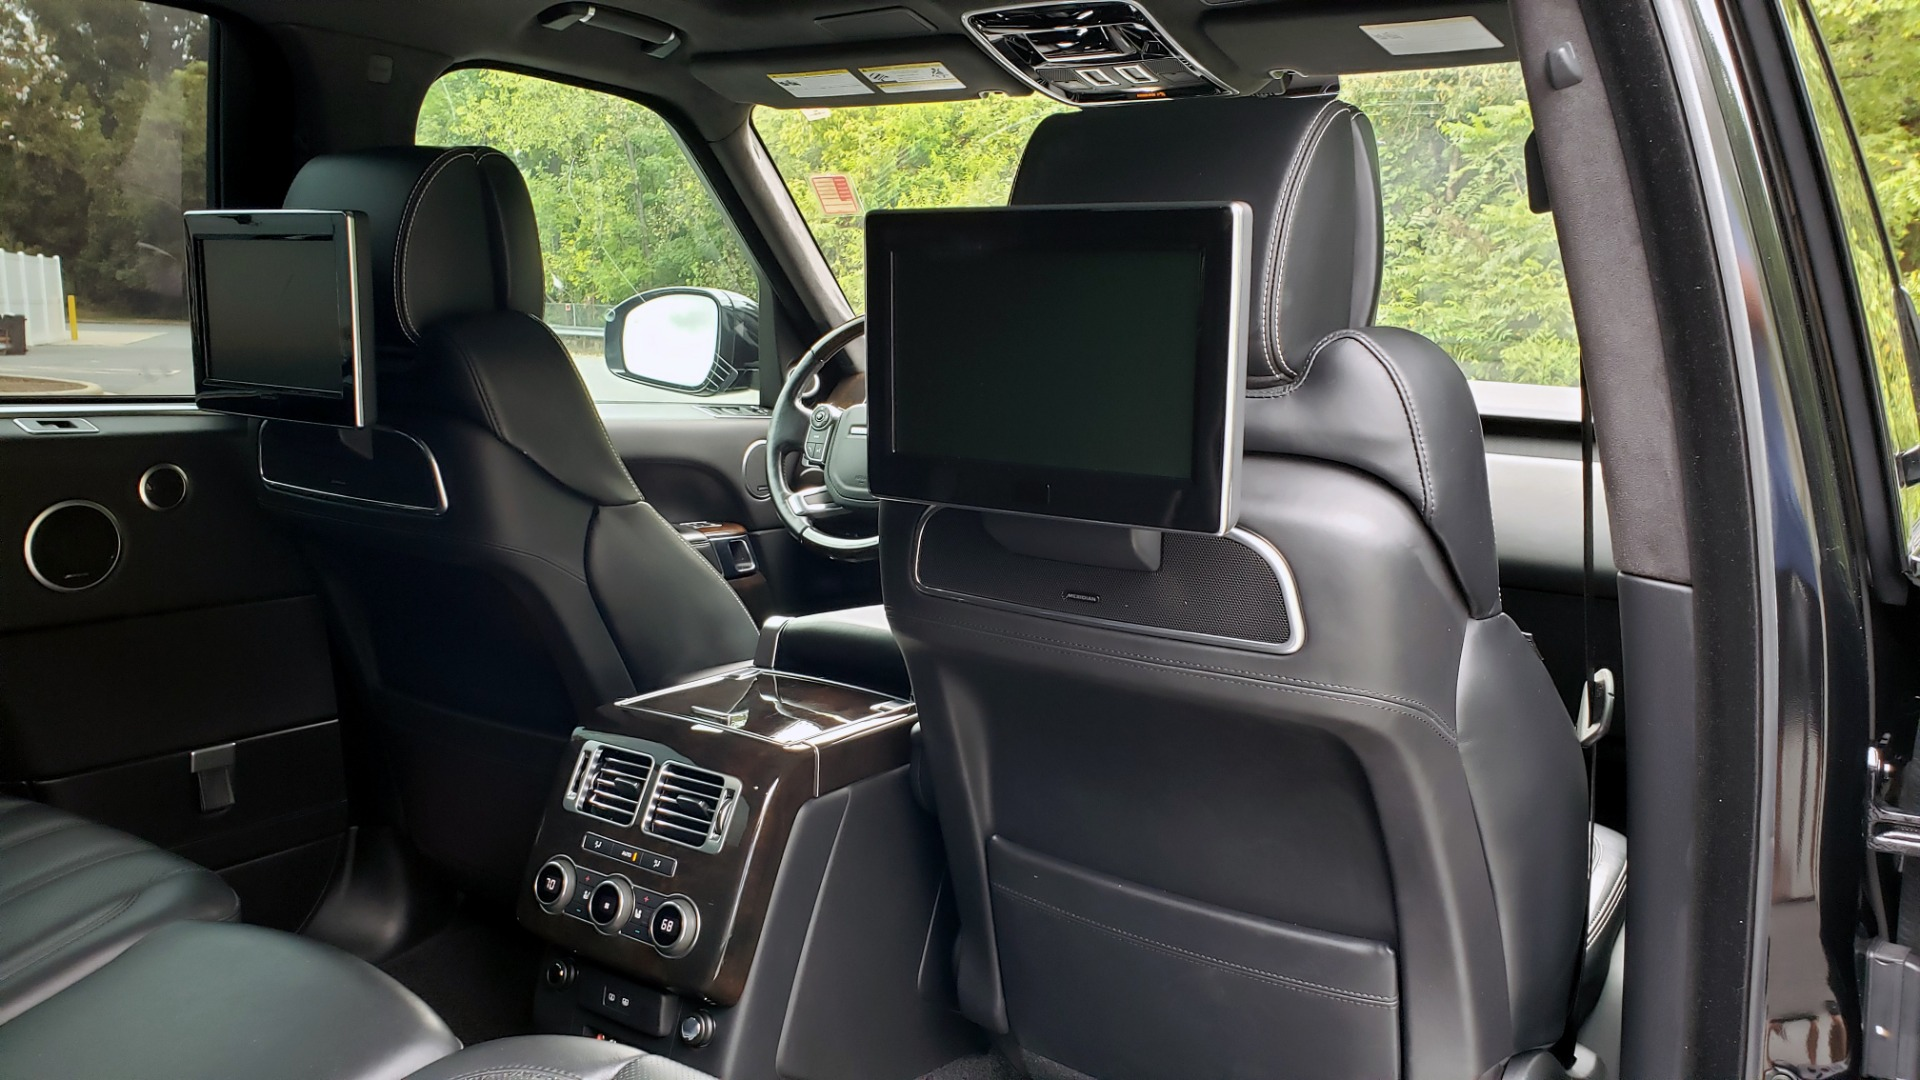 Used 2016 Land Rover RANGE ROVER AUTOBIOGRAPHY / SC-V8 / LWB / PANO-ROOF / NAV / MERIDIAN / ENT / REARVIEW for sale Sold at Formula Imports in Charlotte NC 28227 93